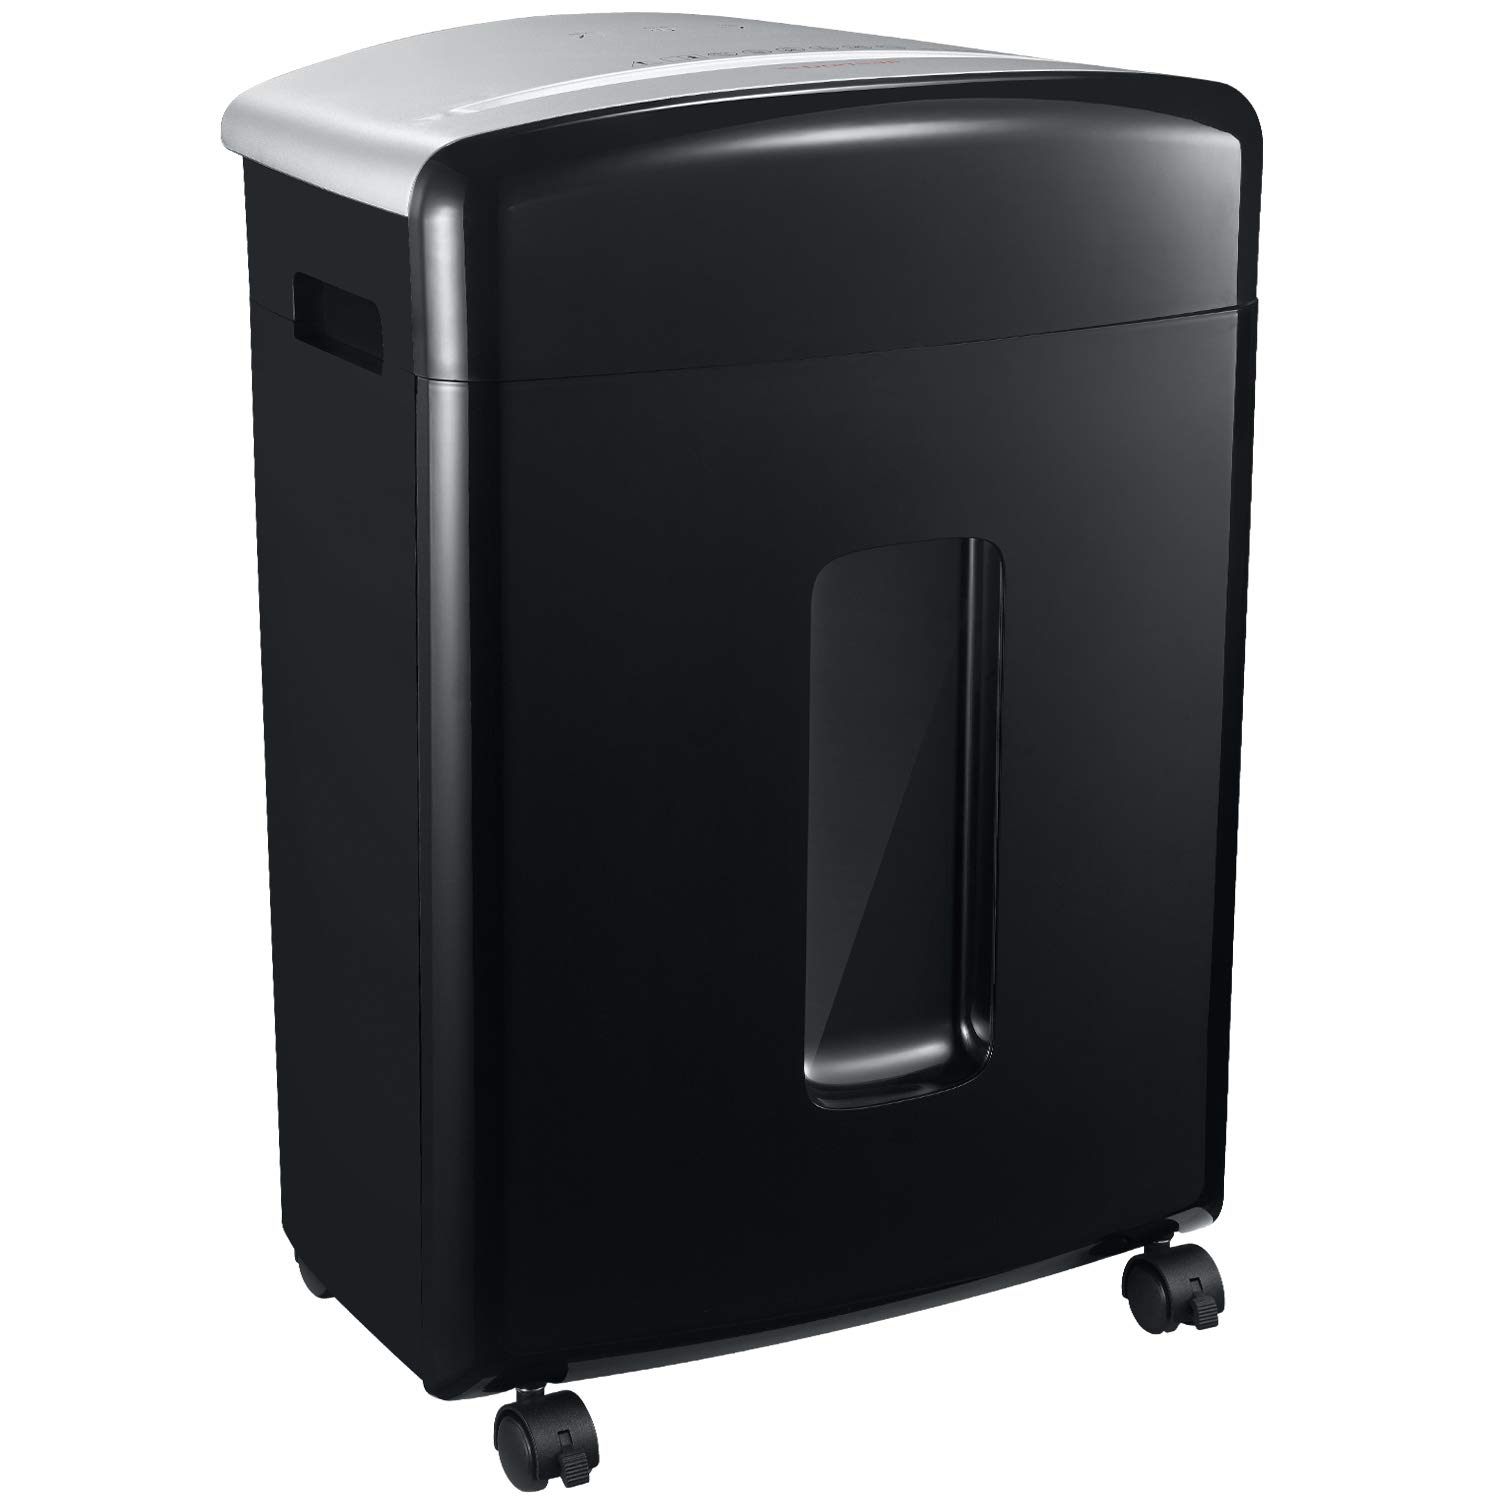 Bonsaii 16-Sheet Micro-Cut Paper/CD/Credit Card Shredder, 20 Minutes Running Time, 60 dB Low Operation Noise, 6.6 Gallons Basket and 4 Casters (C222-B) by bonsaii (Image #1)